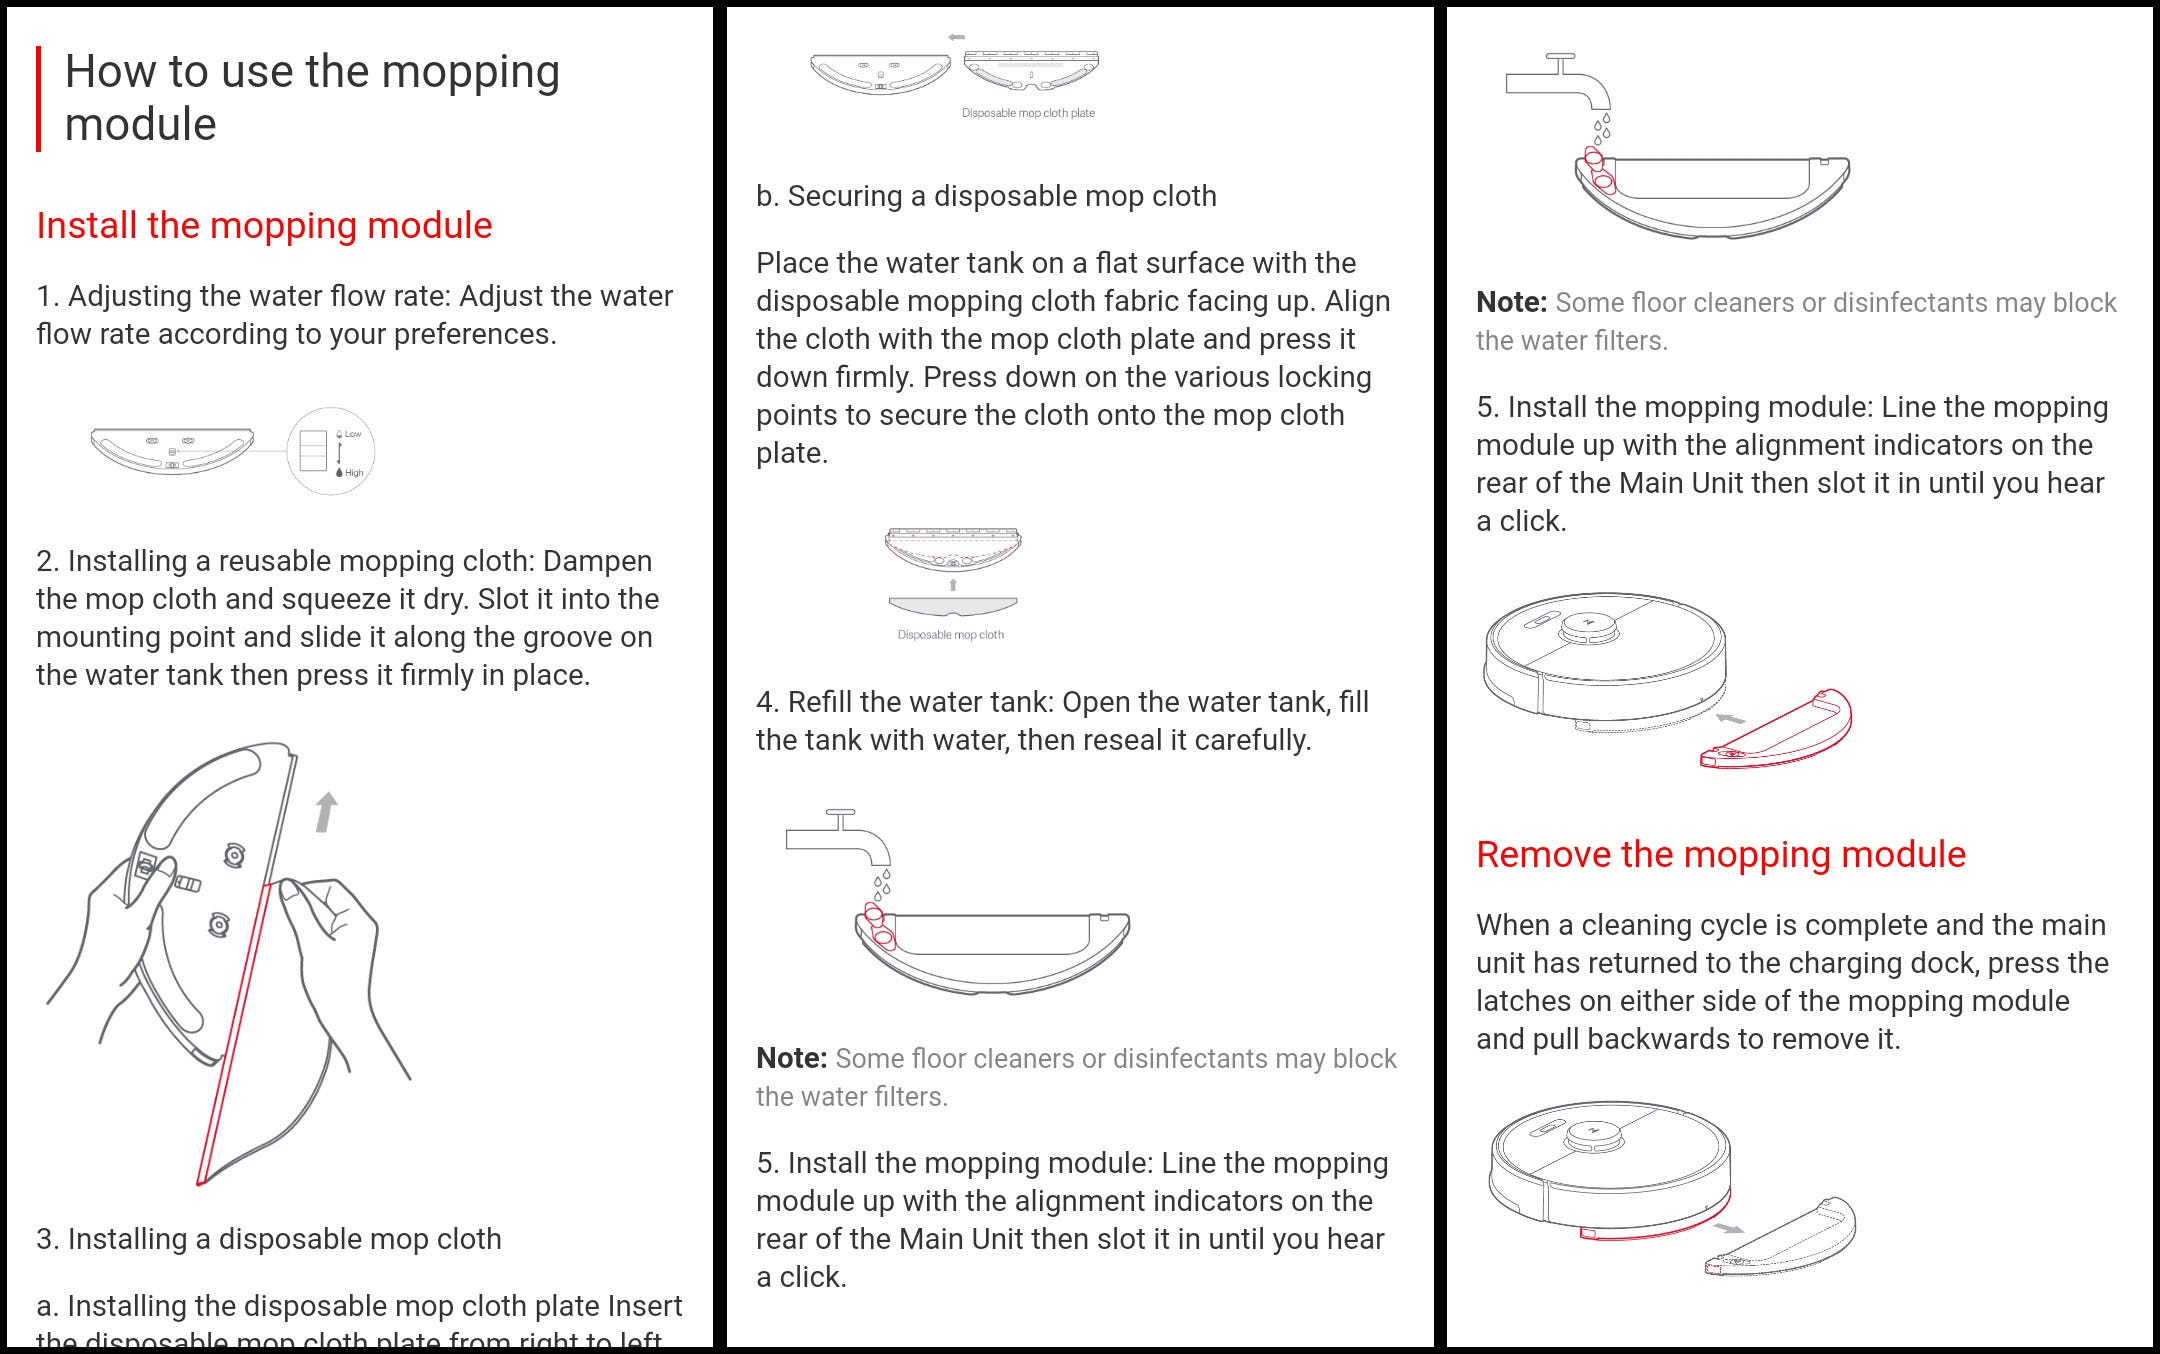 Instructions for using the mopping module